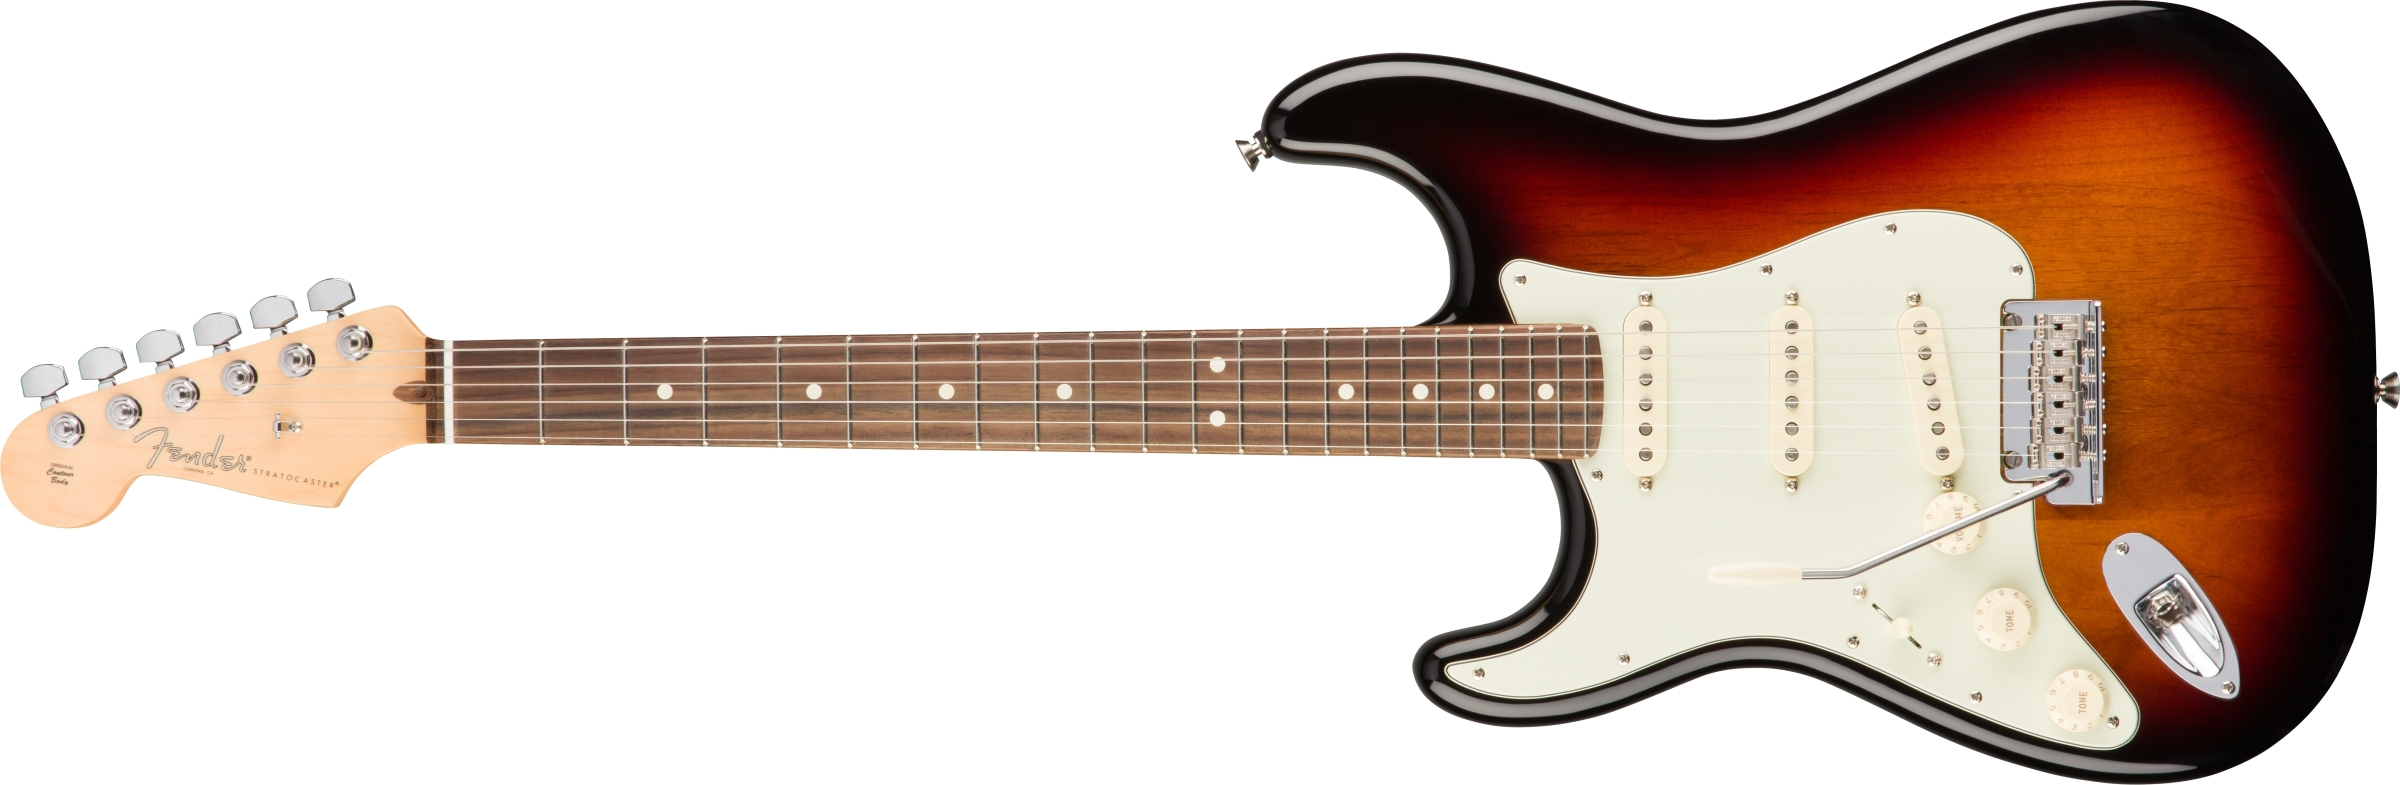 american professional stratocaster left hand electric guitars. Black Bedroom Furniture Sets. Home Design Ideas